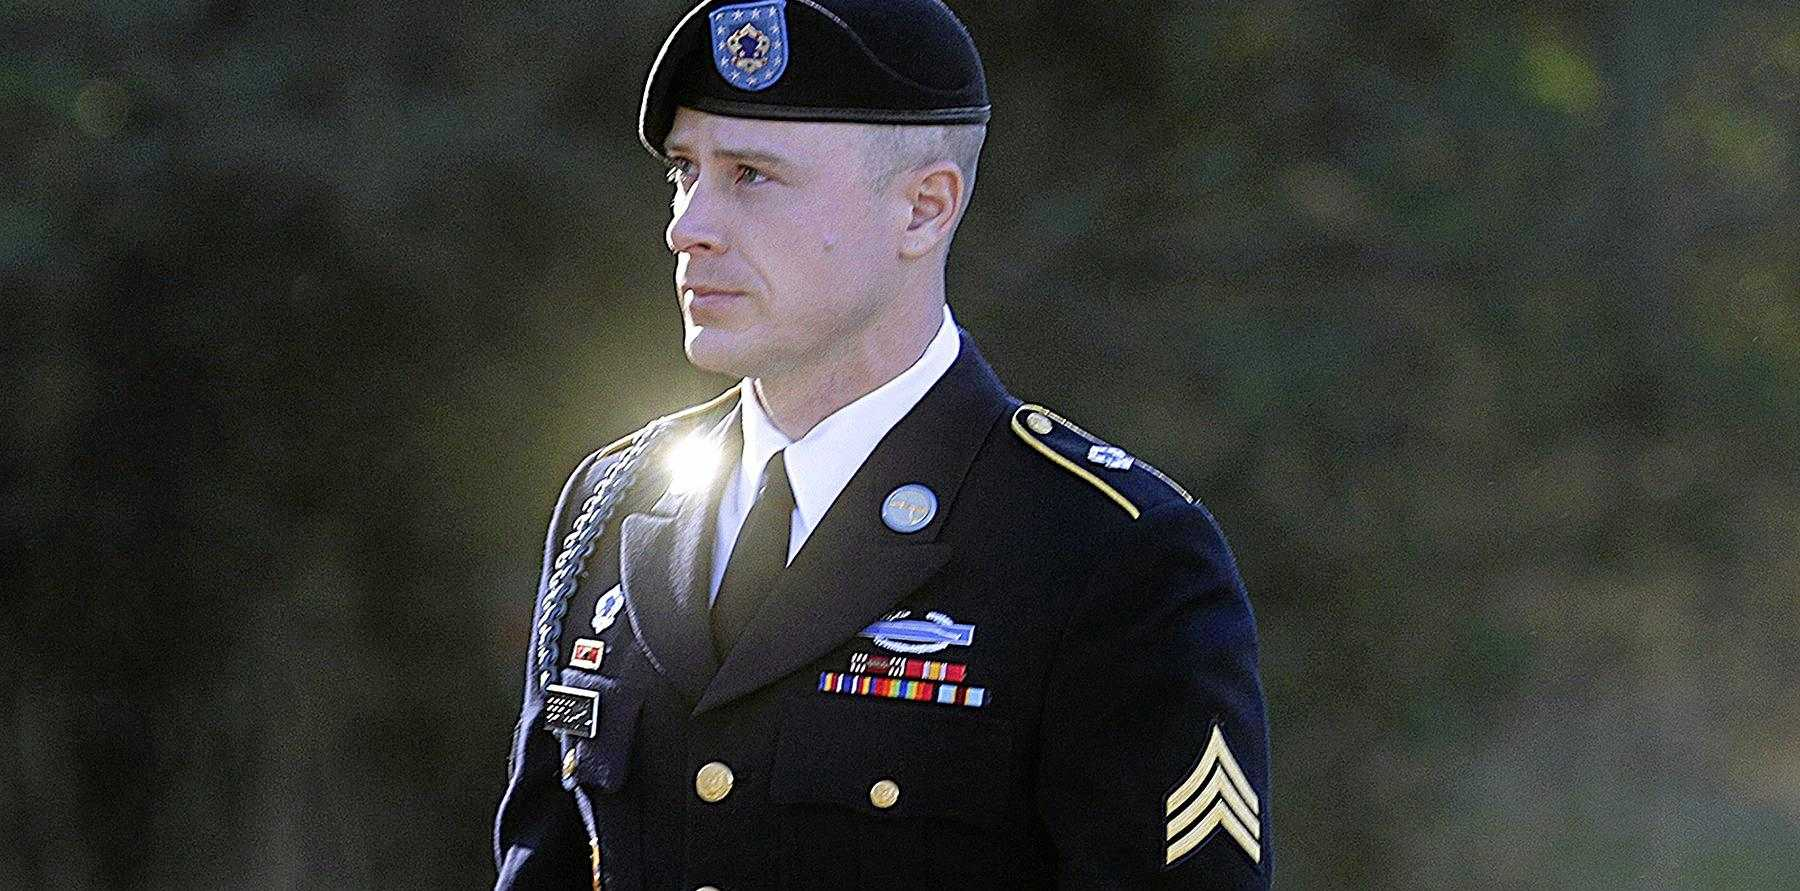 Bowe Bergdahl arrives for a pre-trial hearing at Fort Bragg.